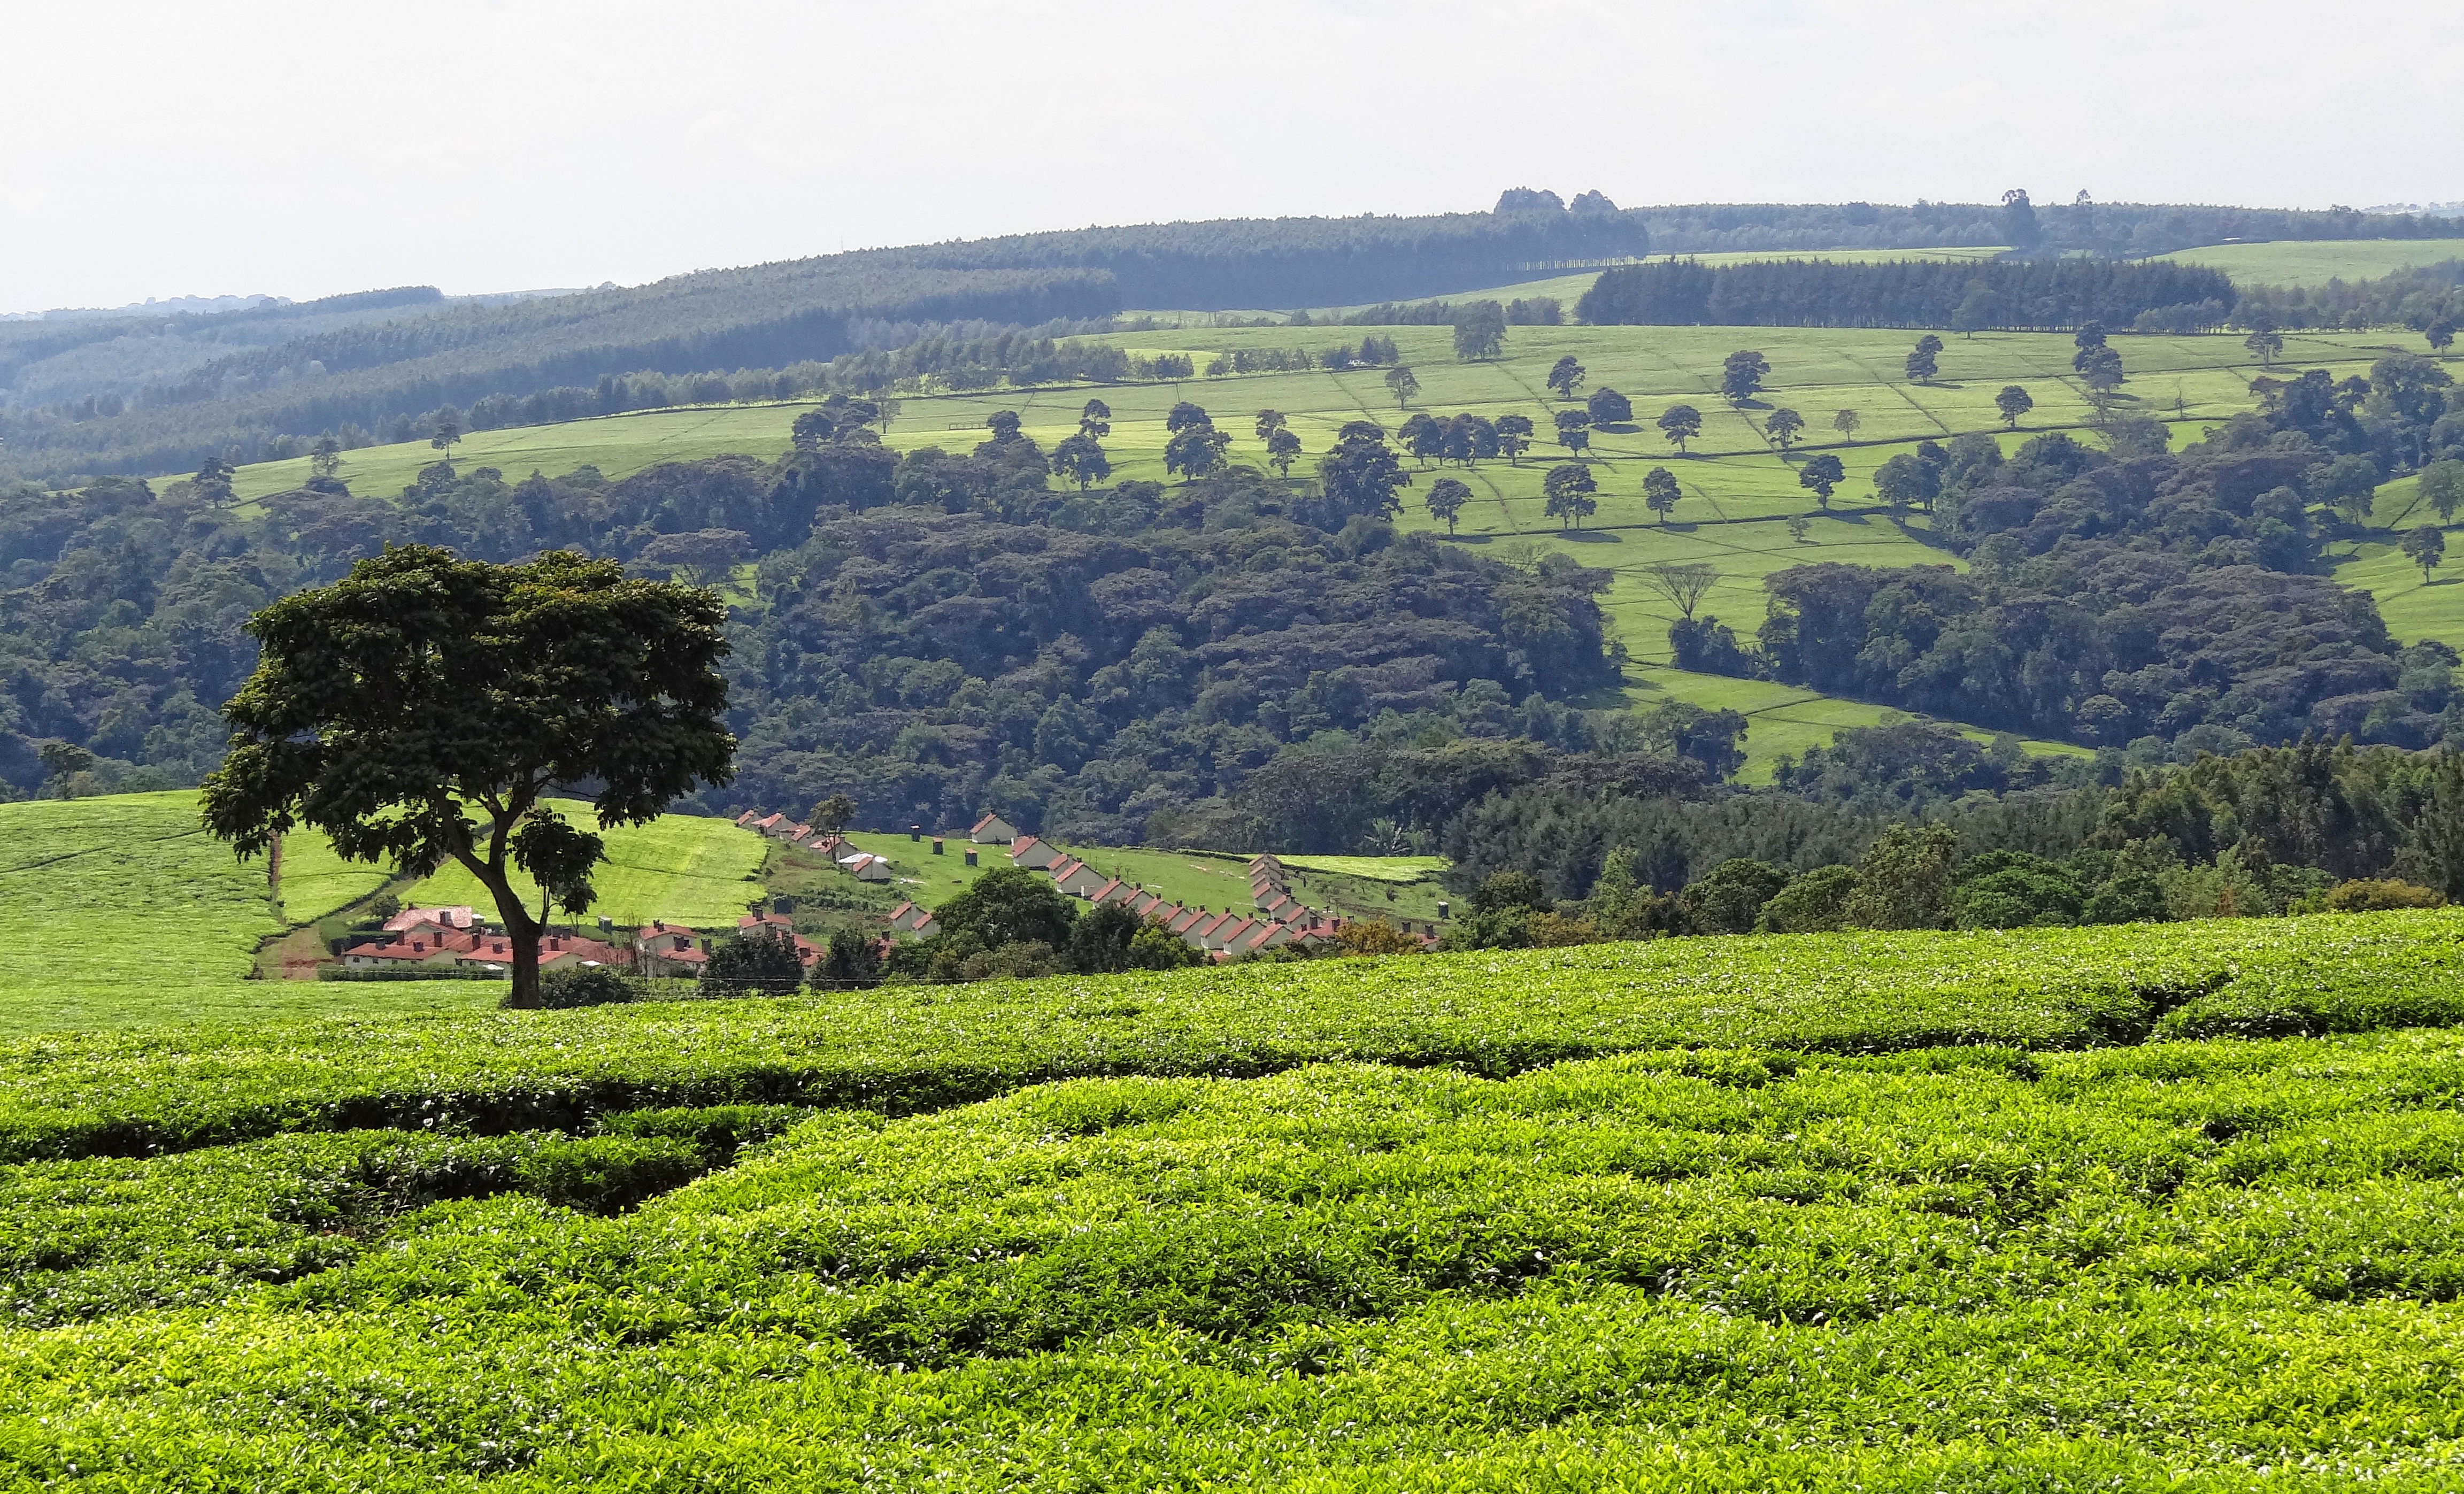 A tea plantation near Kericho in the Kenyan highlands. Credit: Bjørn Christian Tørrissen